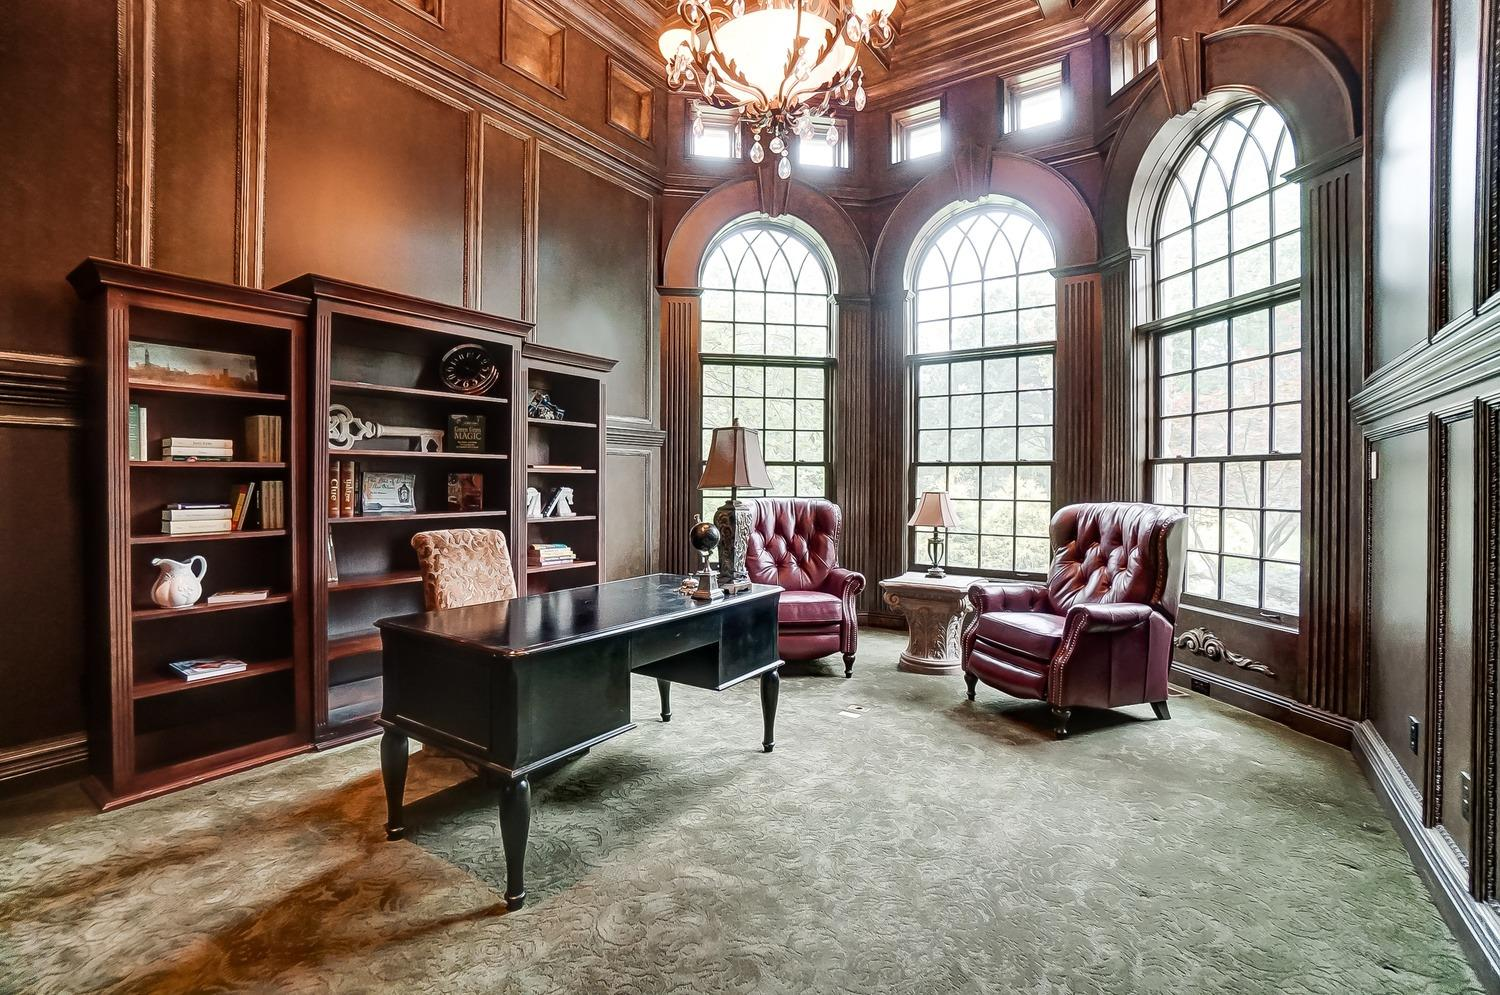 A handcrafted all-wood library with 16' high ceilings includes a fireplace with built-in bookshelves.